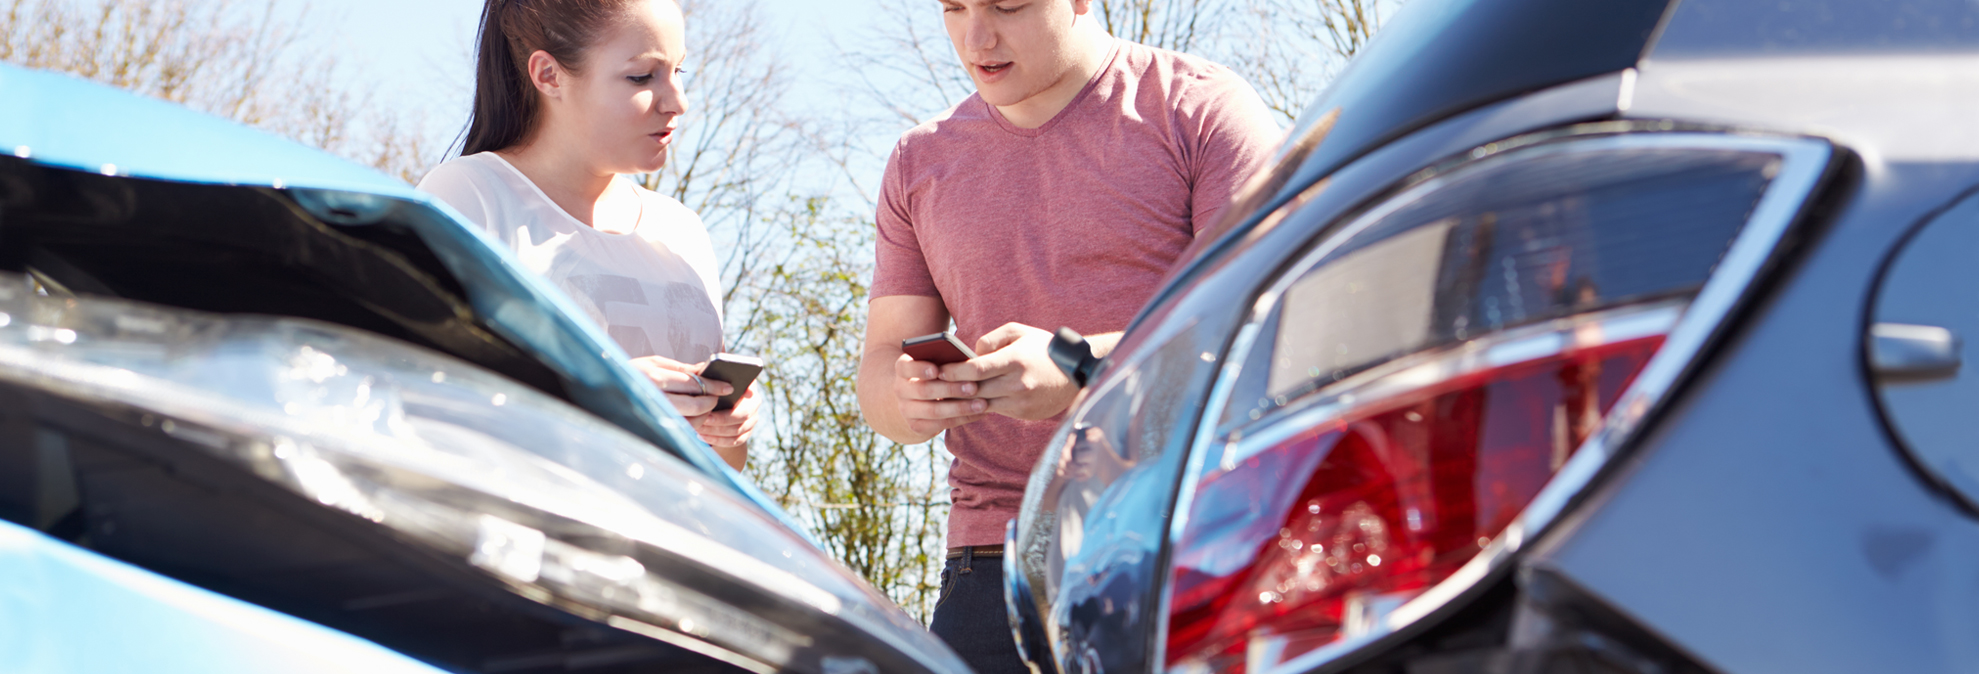 Two Decades of Consumer Reports' Car Insurance Survey Results